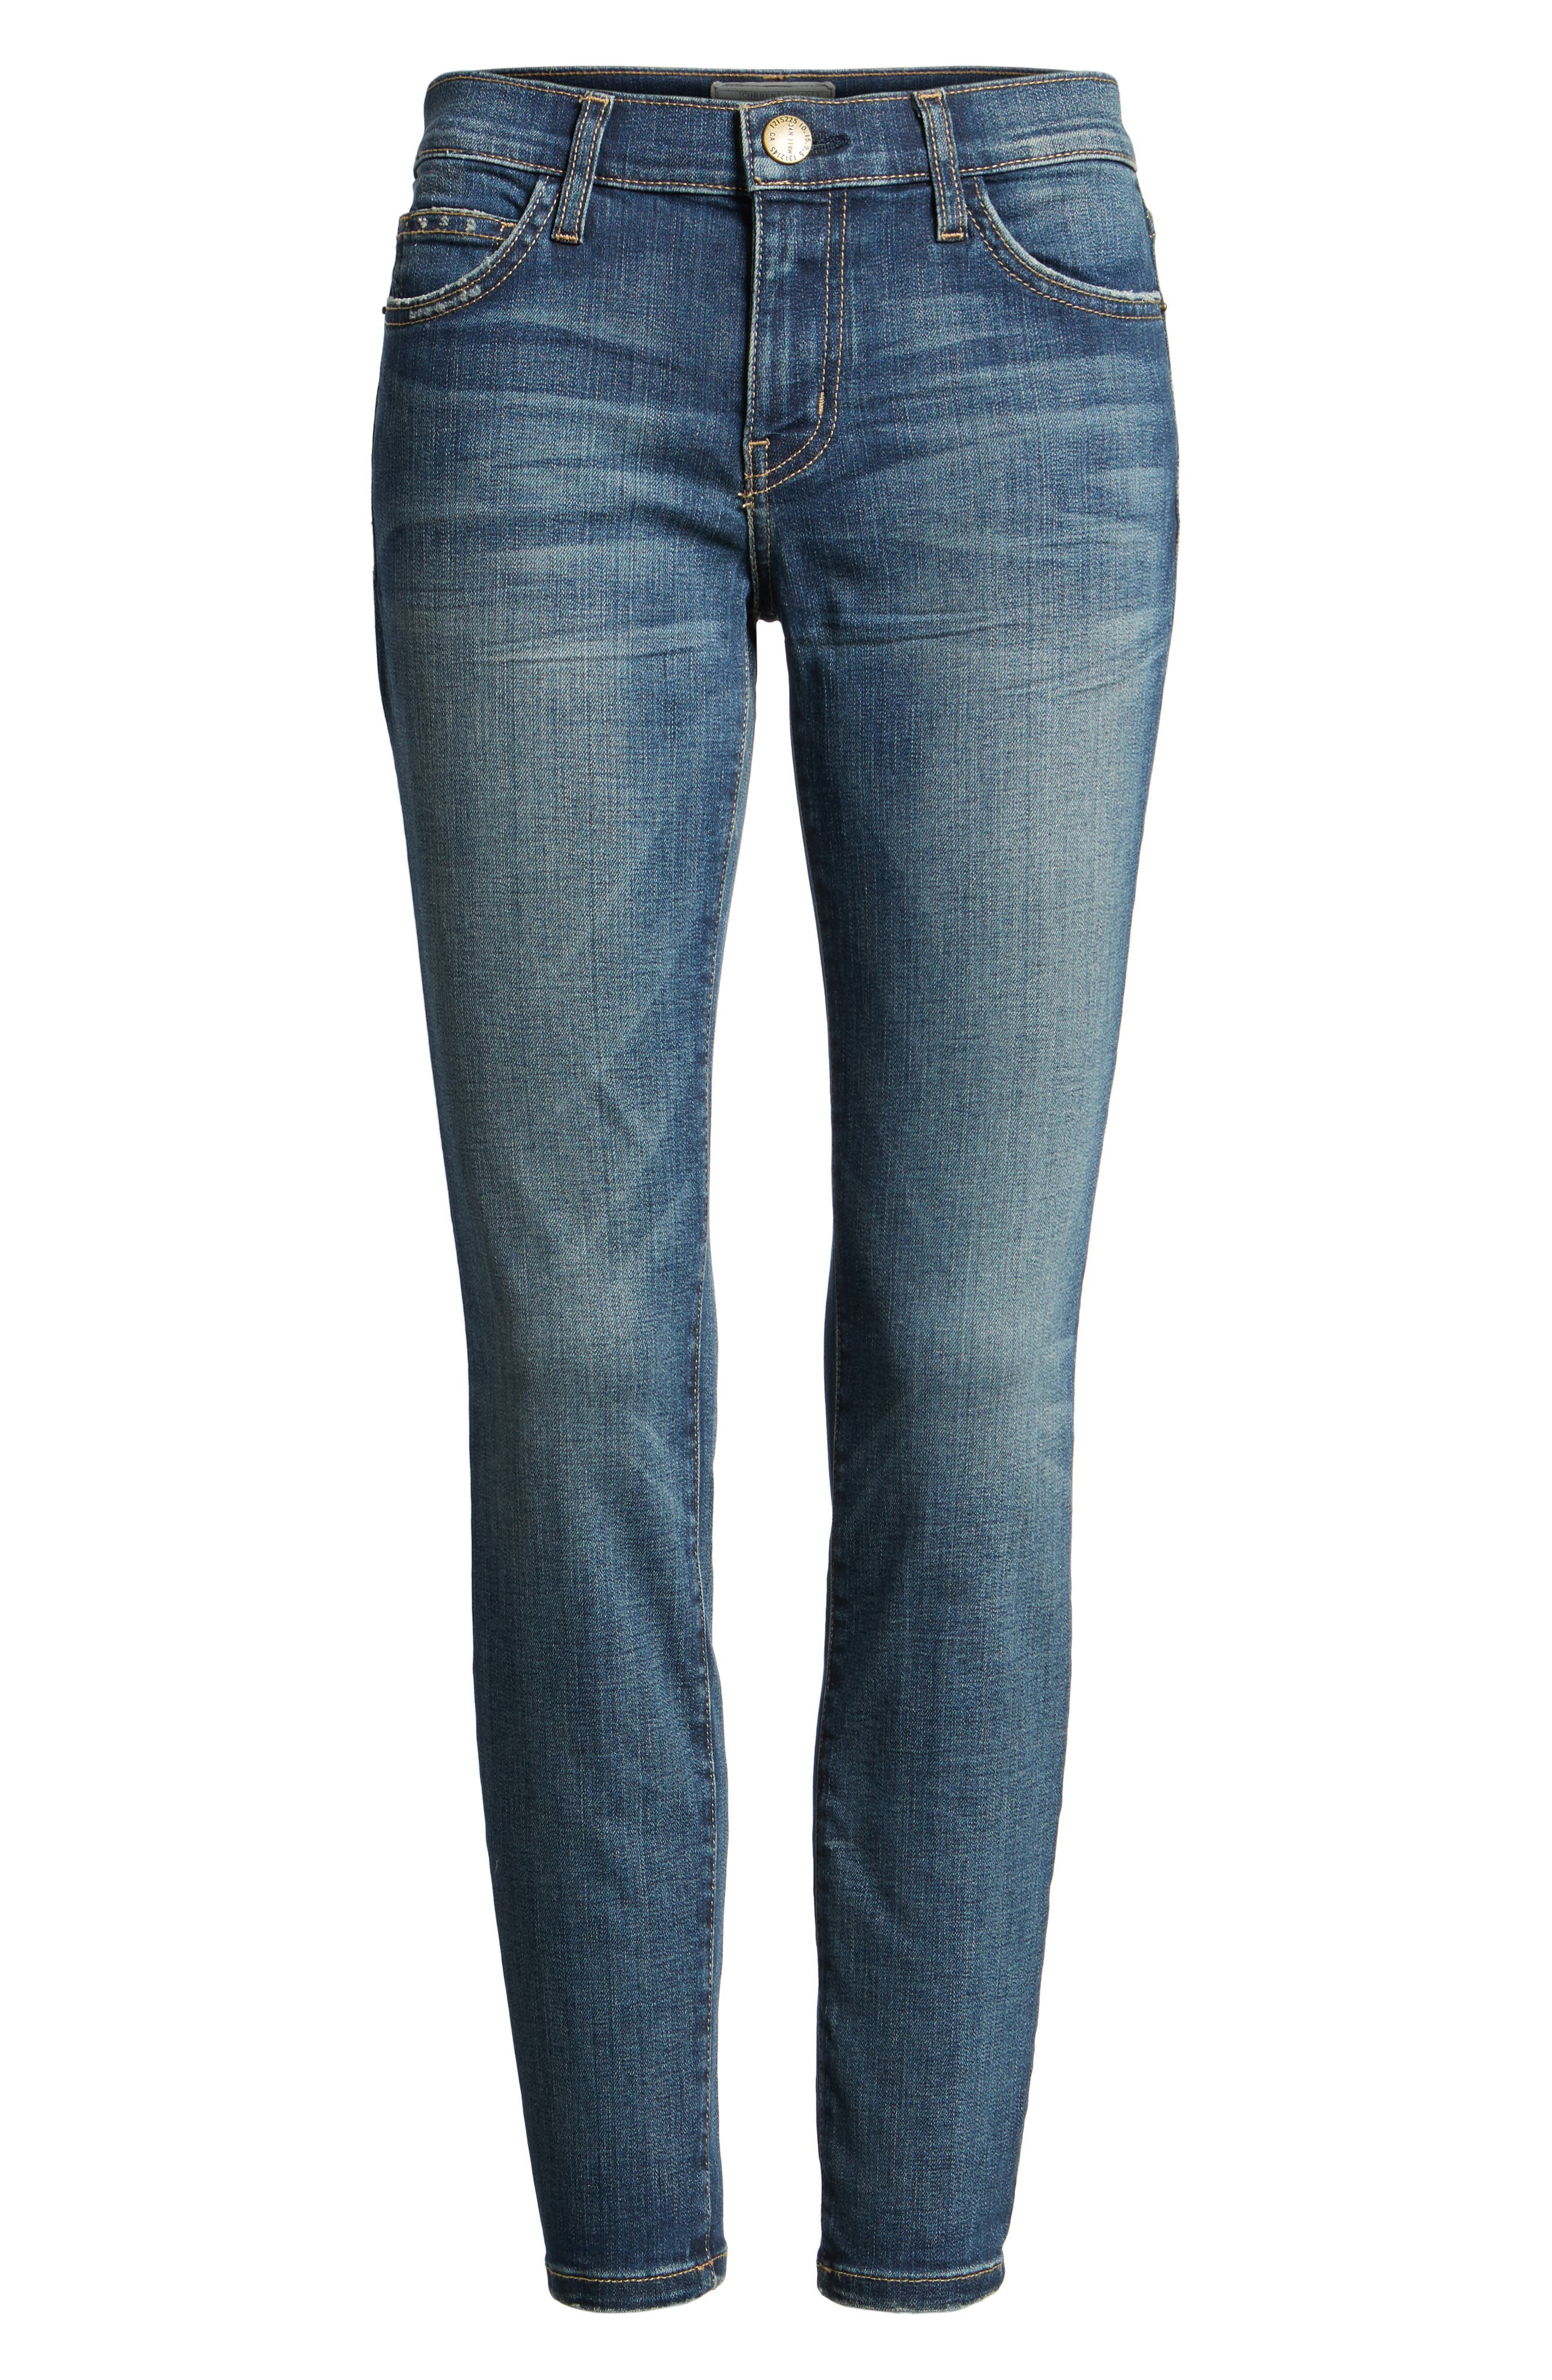 'The Stiletto' Stretch Jeans,                             Alternate thumbnail 13, color,